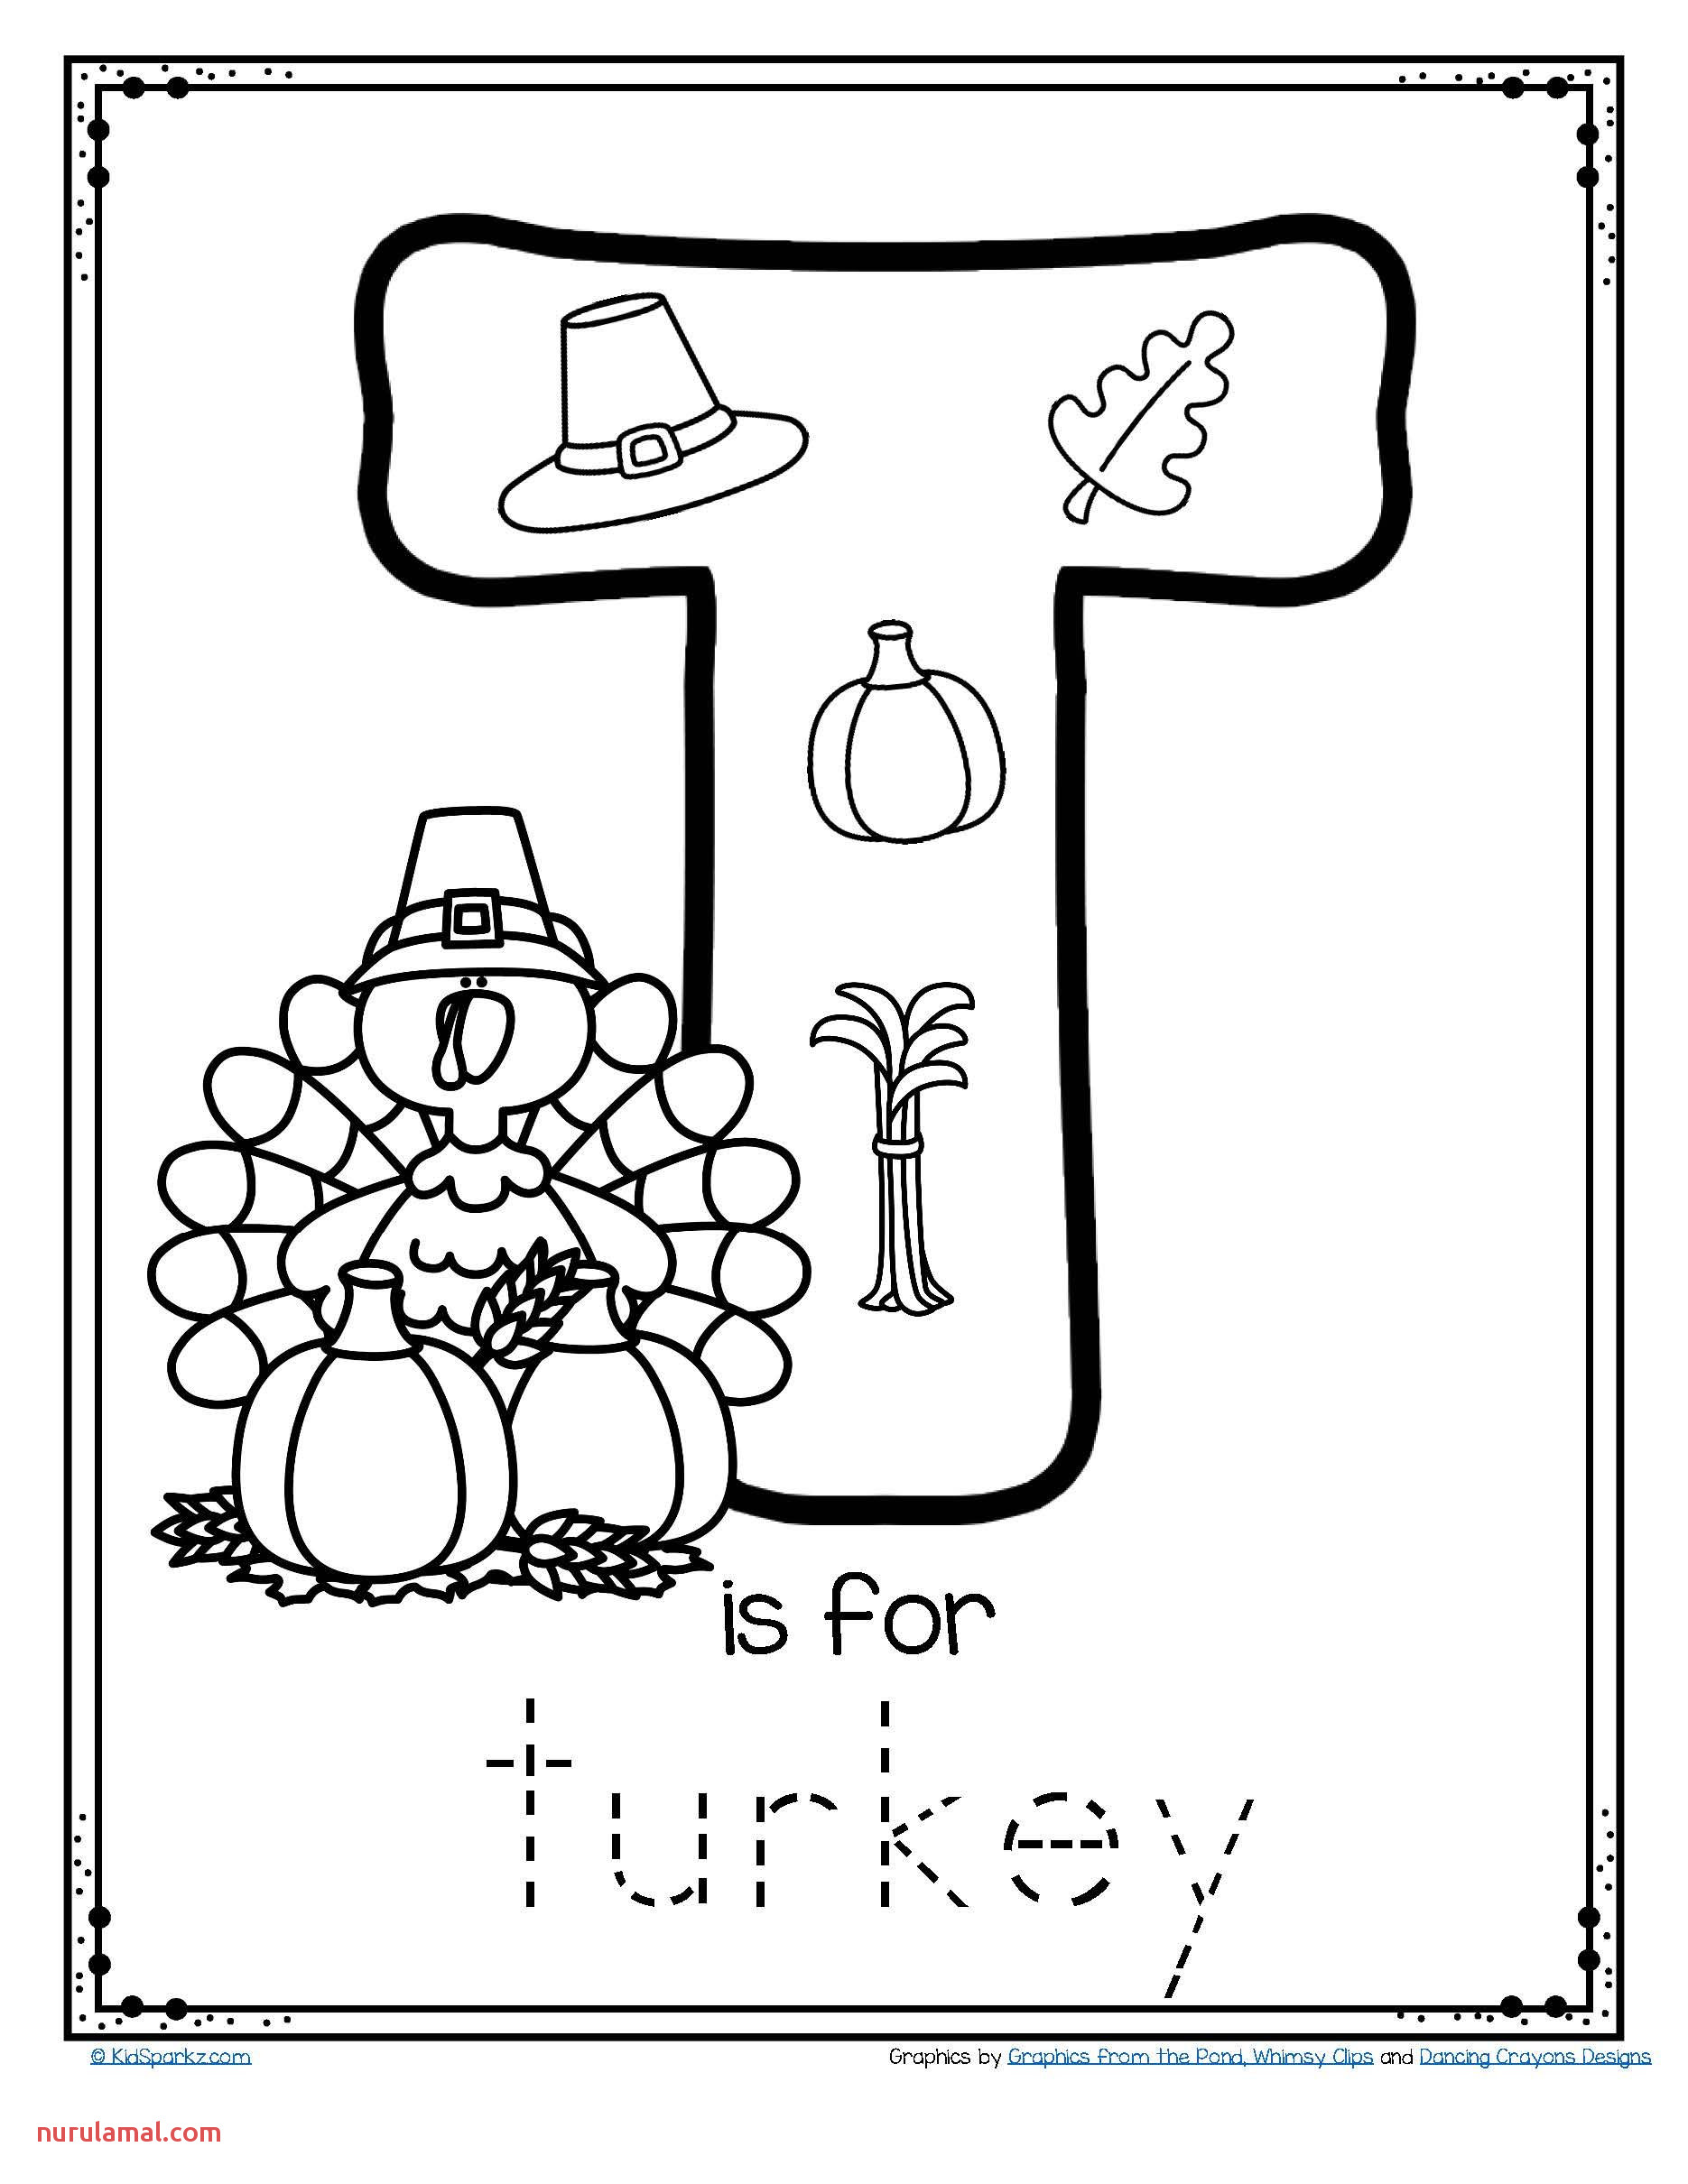 Spelling Kindergarten Handwriting Worksheets